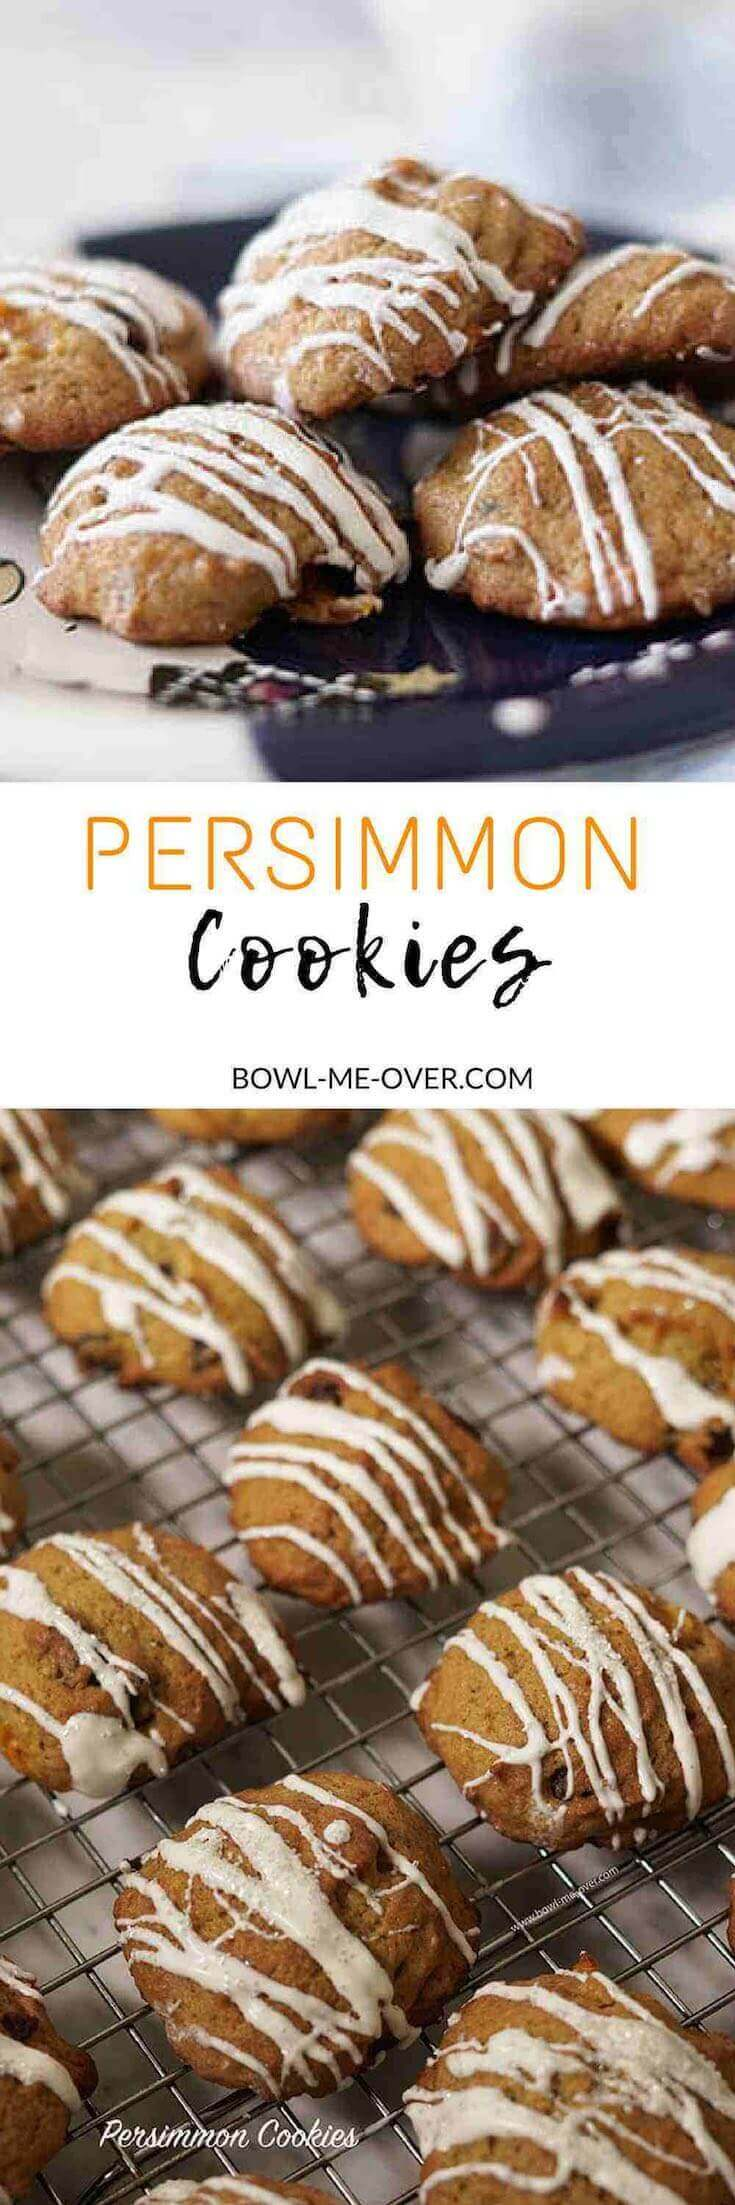 Old fashioned Persimmon Cookies Recipe - cookies are just baked and cooling on a wire rack.